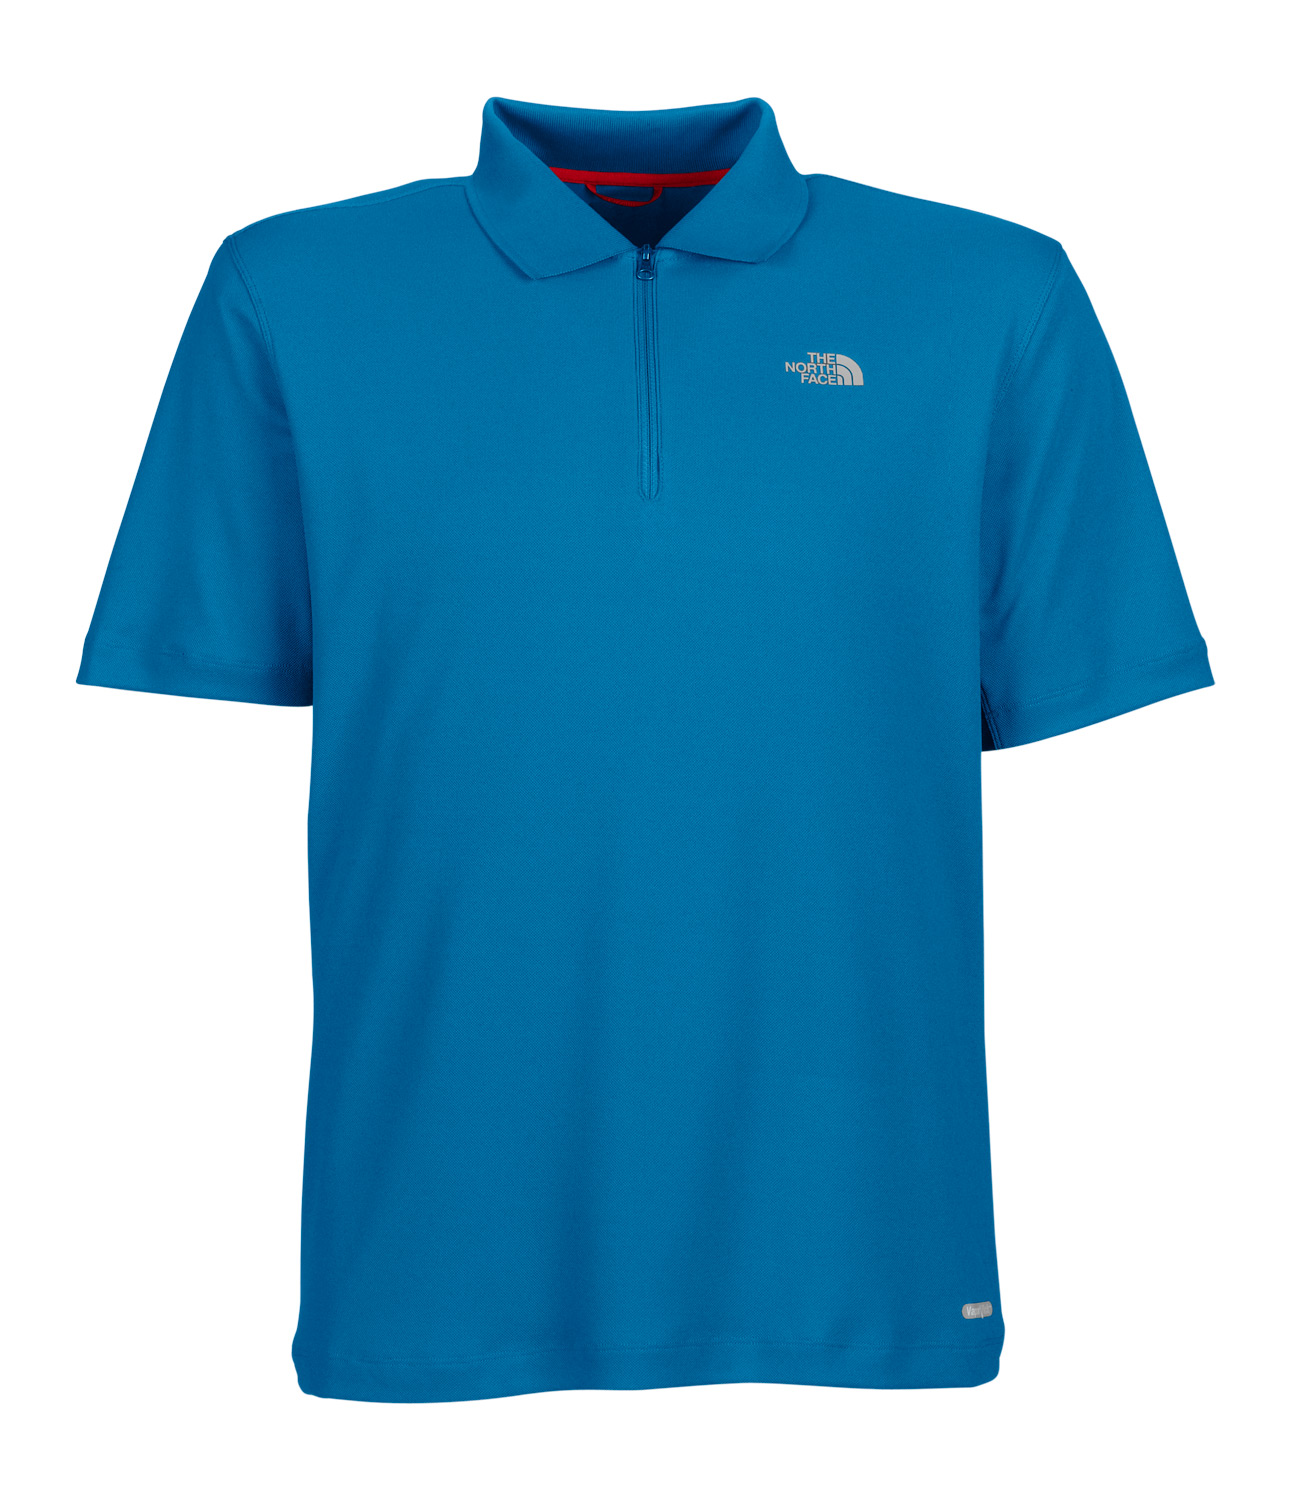 Key Features of The North Face Logo Polo Polo Shirt: Coolmax fabric pulls moisture away from skin keeping you dry UPF 30 sun protection Reverse-coil quarter zip Underarm gussets improve mobility The North Face logo on left chest Quick-drying - $34.95